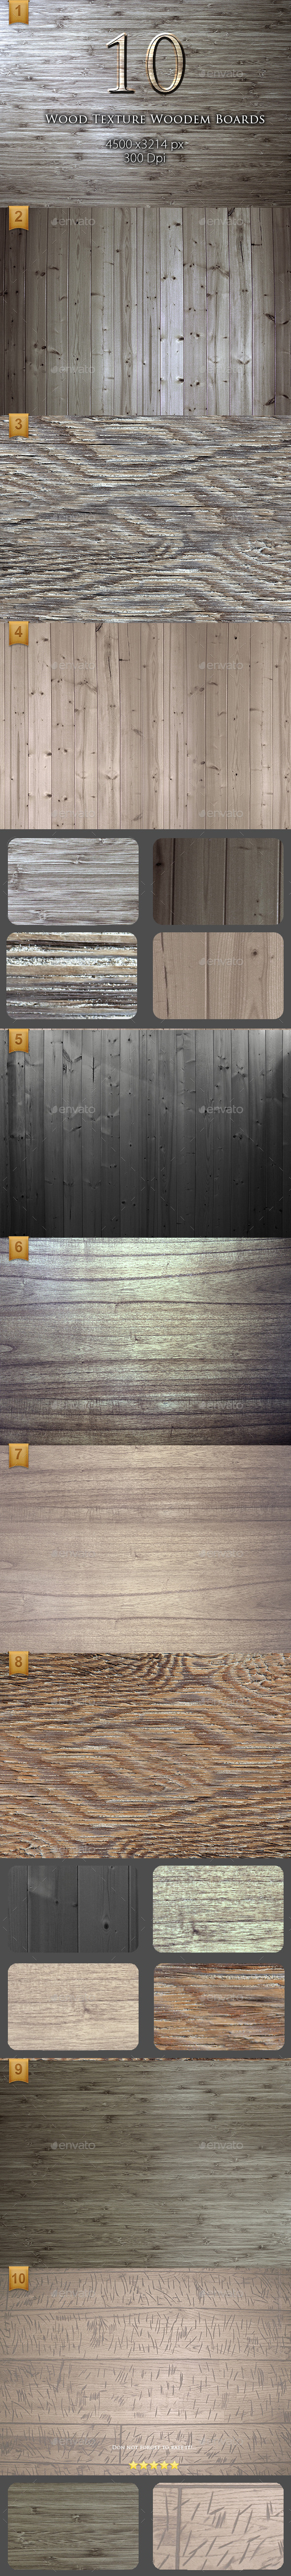 GraphicRiver 10 Wood Texture Wooden Boards 9692122